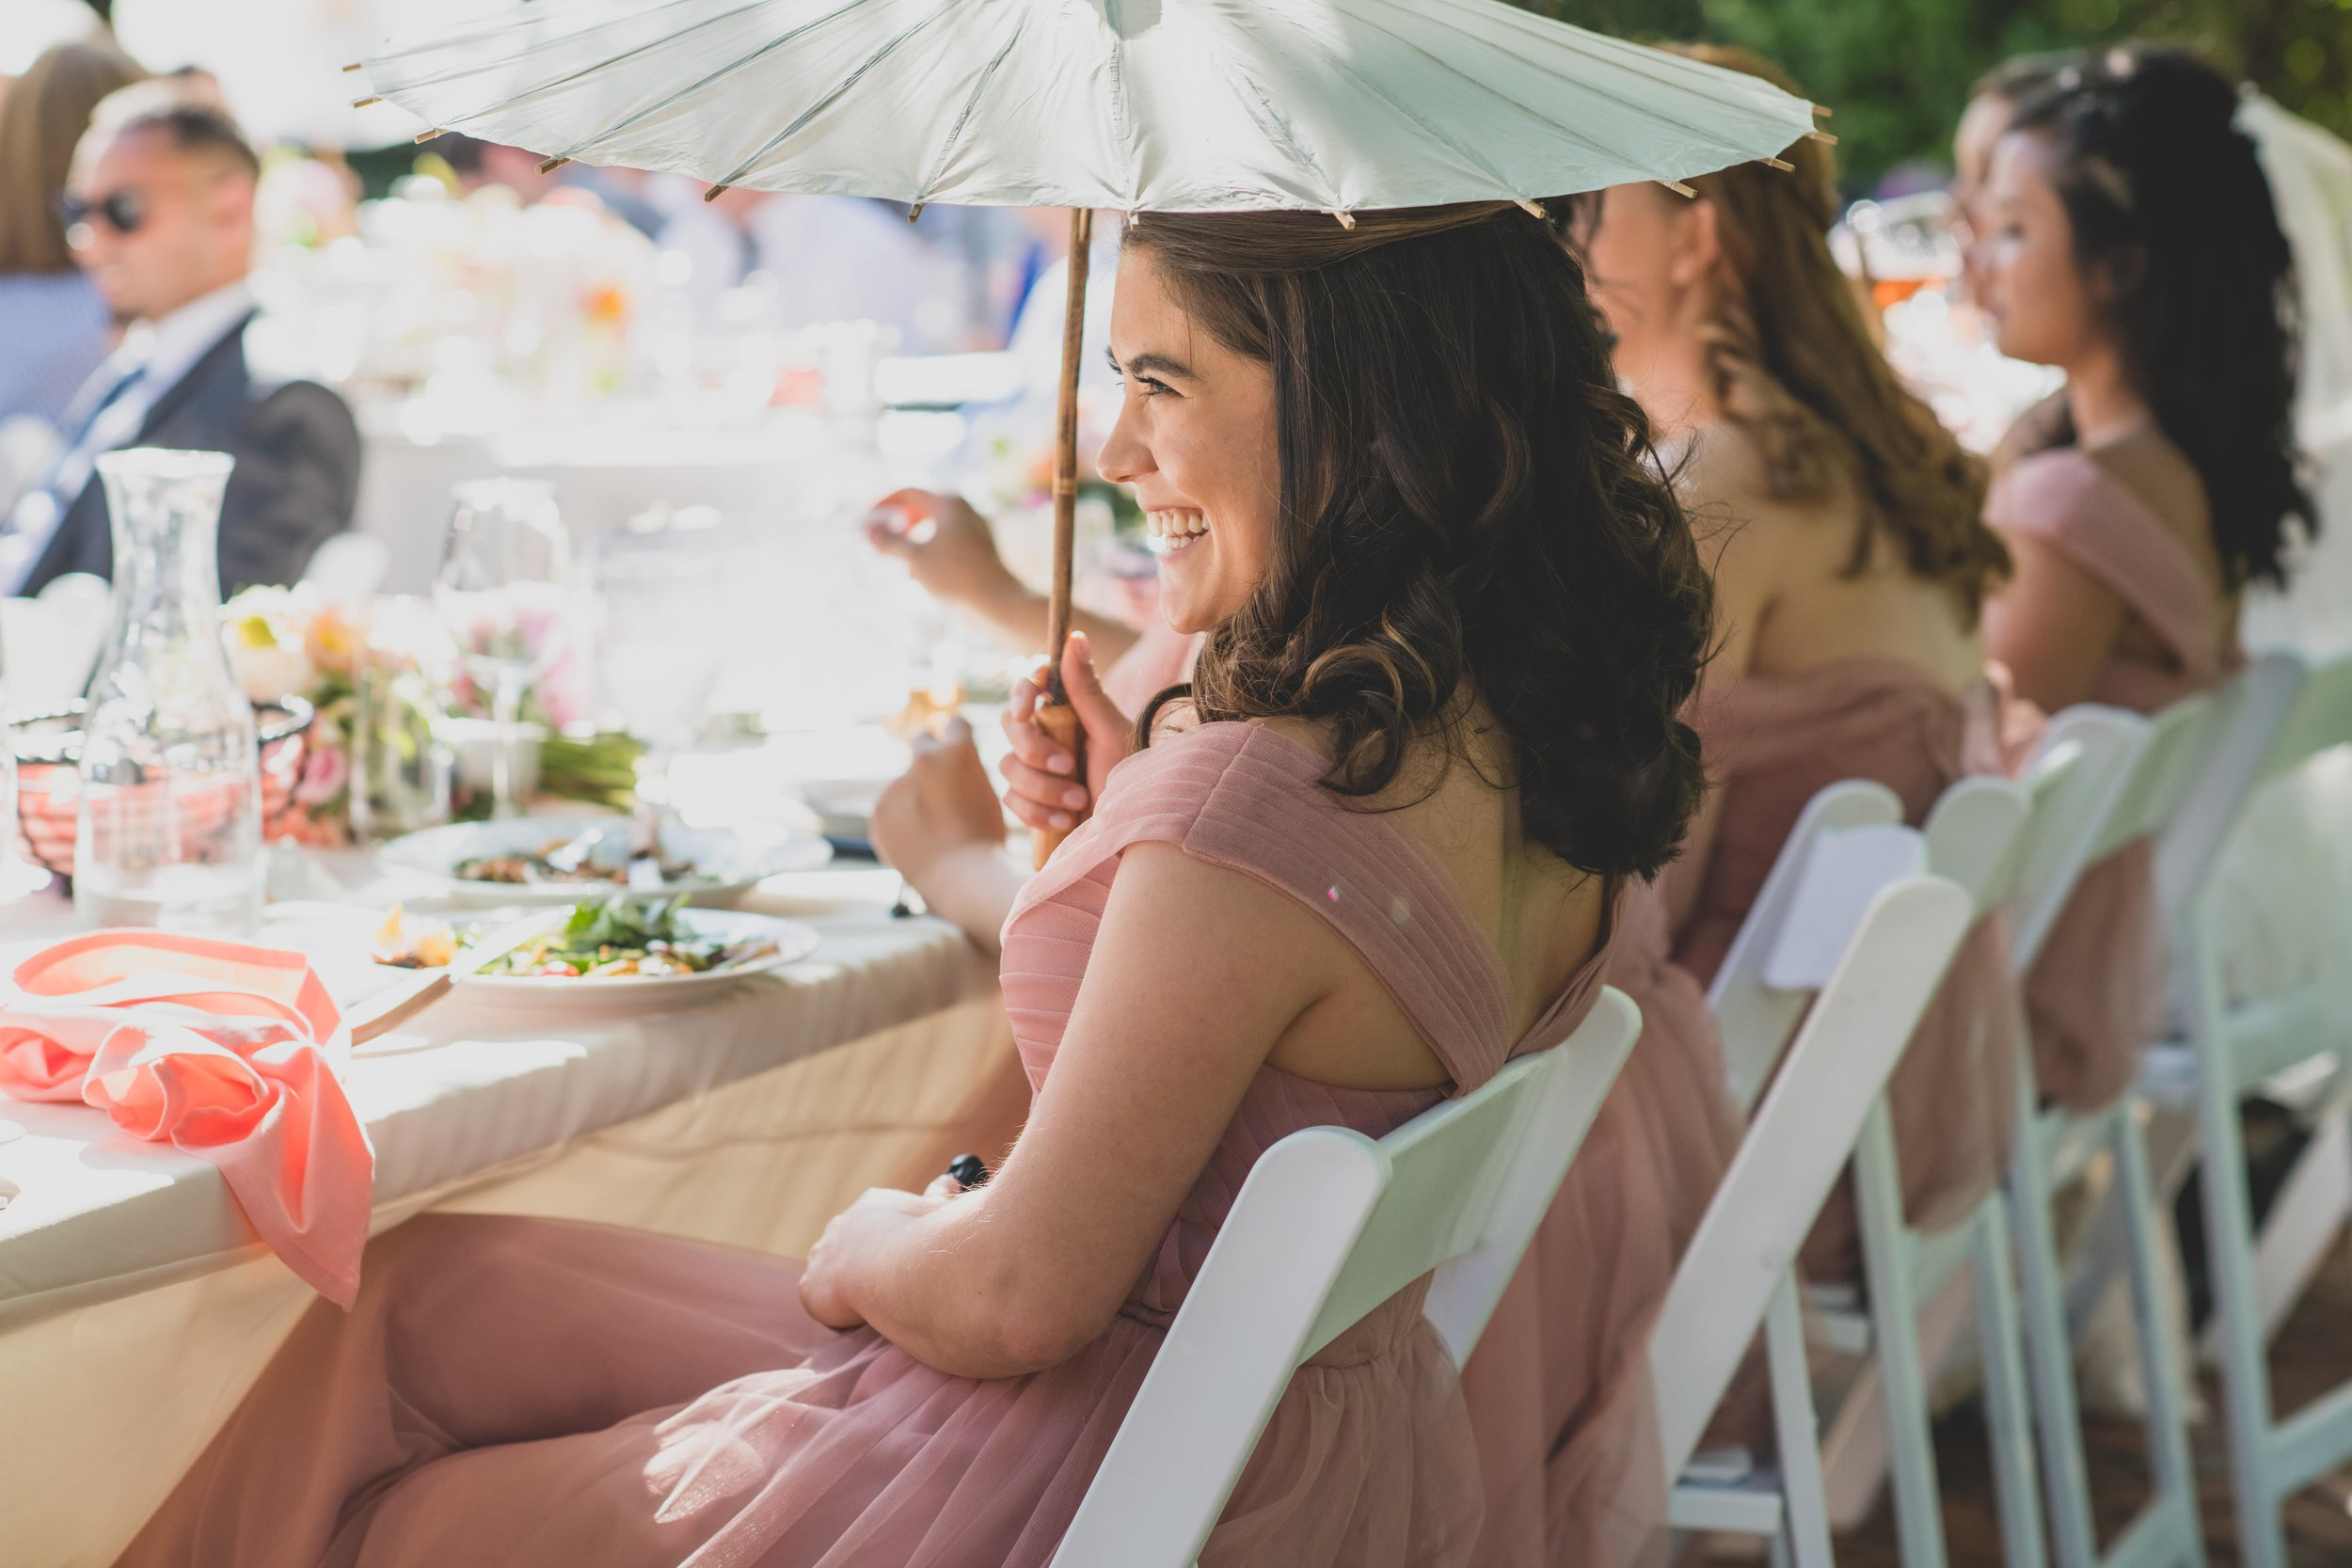 Last Minute Checklist: Things to Know Before Your Outdoor Wedding - A bridesmaid using a parasol to shield herself from the summer heat during an outdoor wedding reception.